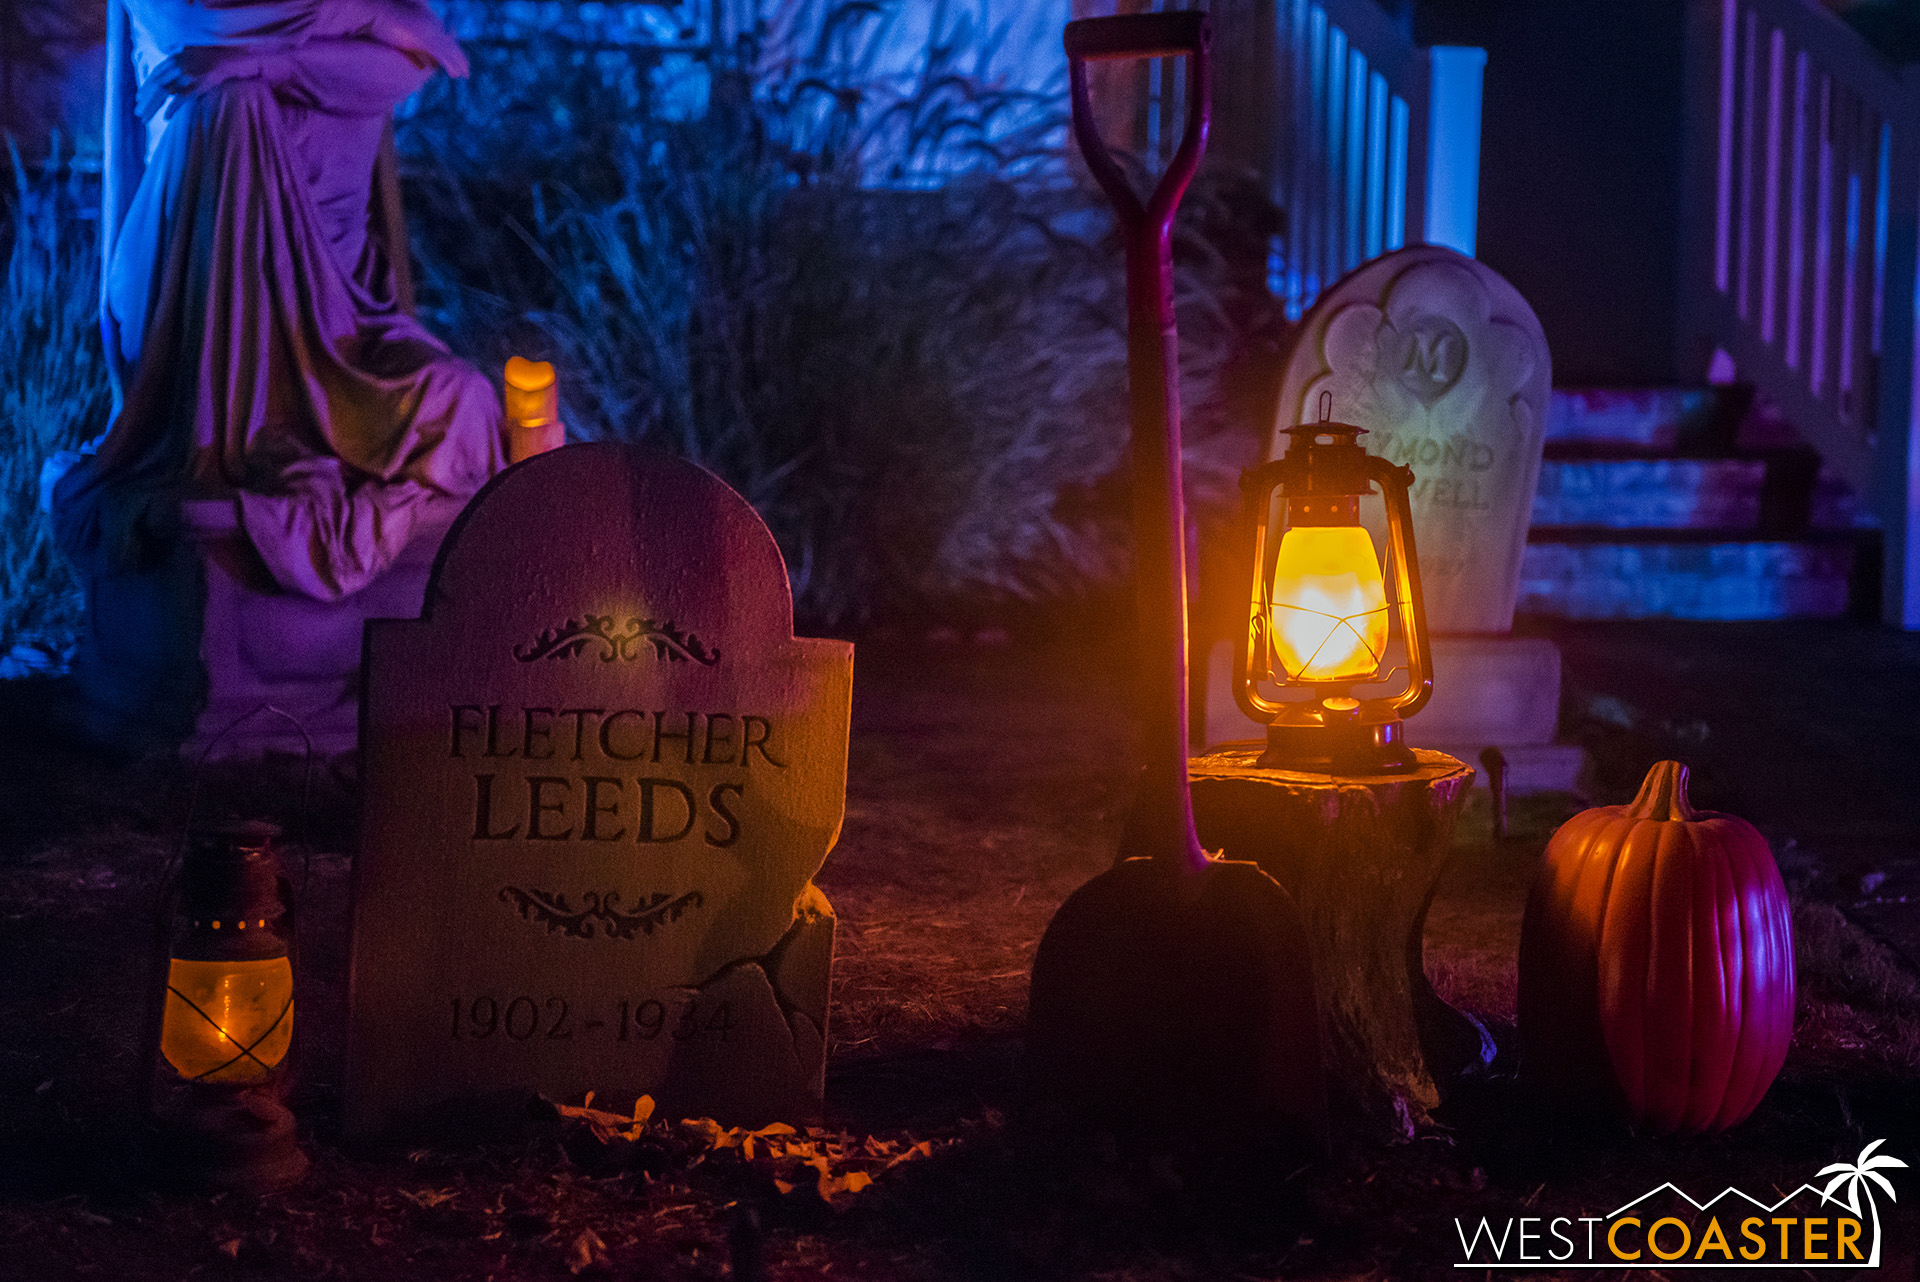 There are lots of fine details in both the tombstones and the theming. Lovely touches of Halloween.